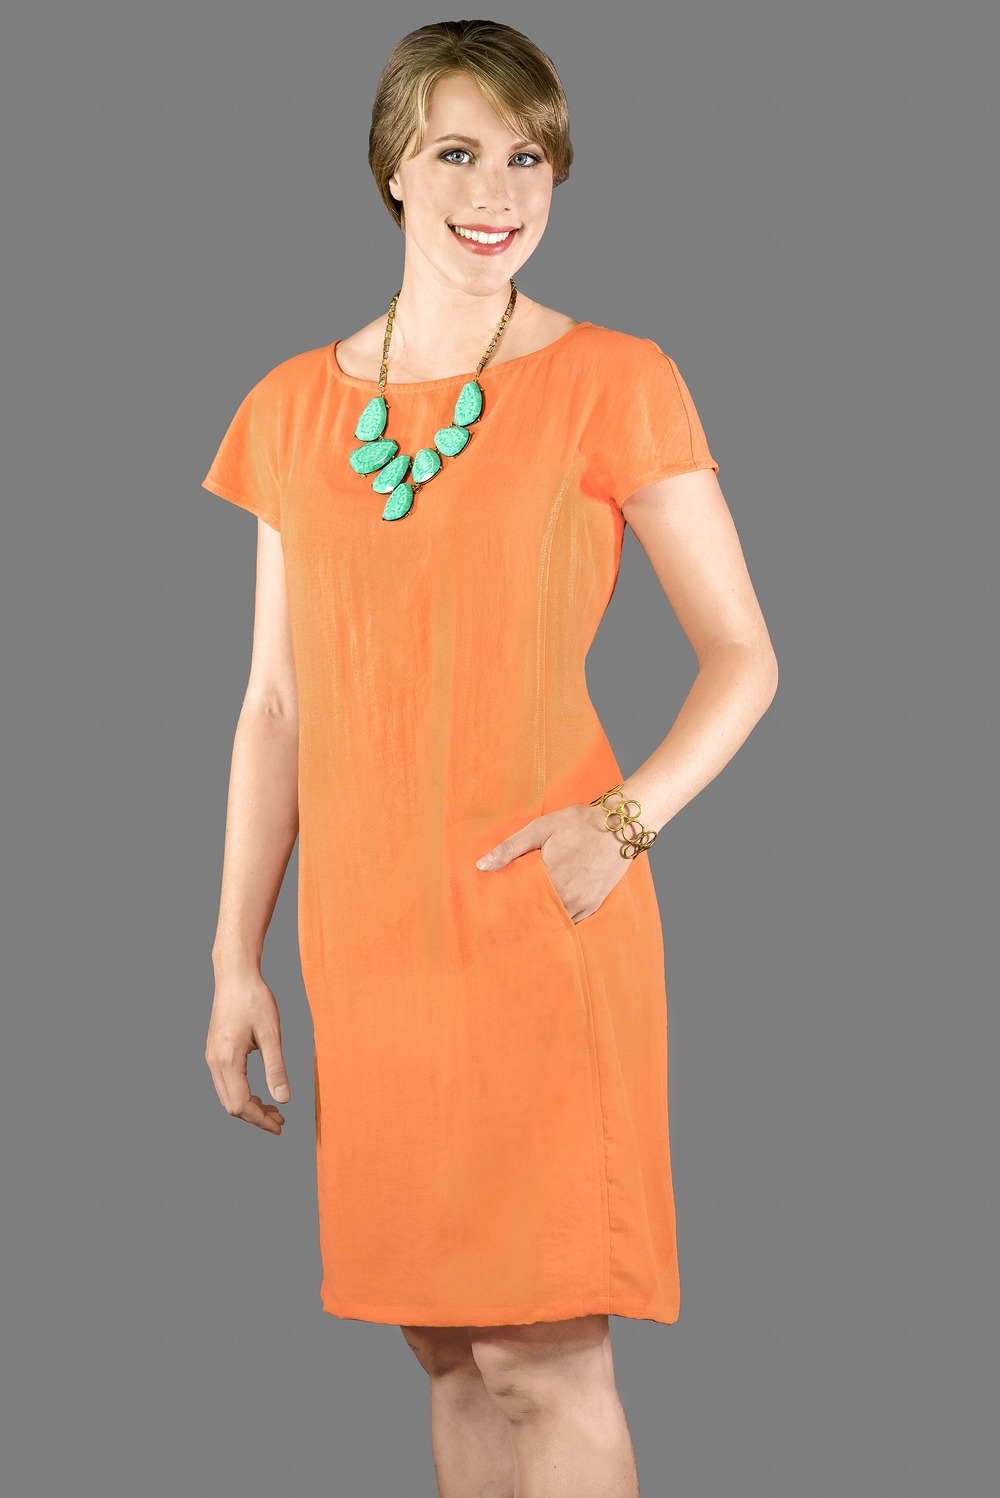 AAD199 - Cap Sleeve Dress    CL3979 - Tangerine